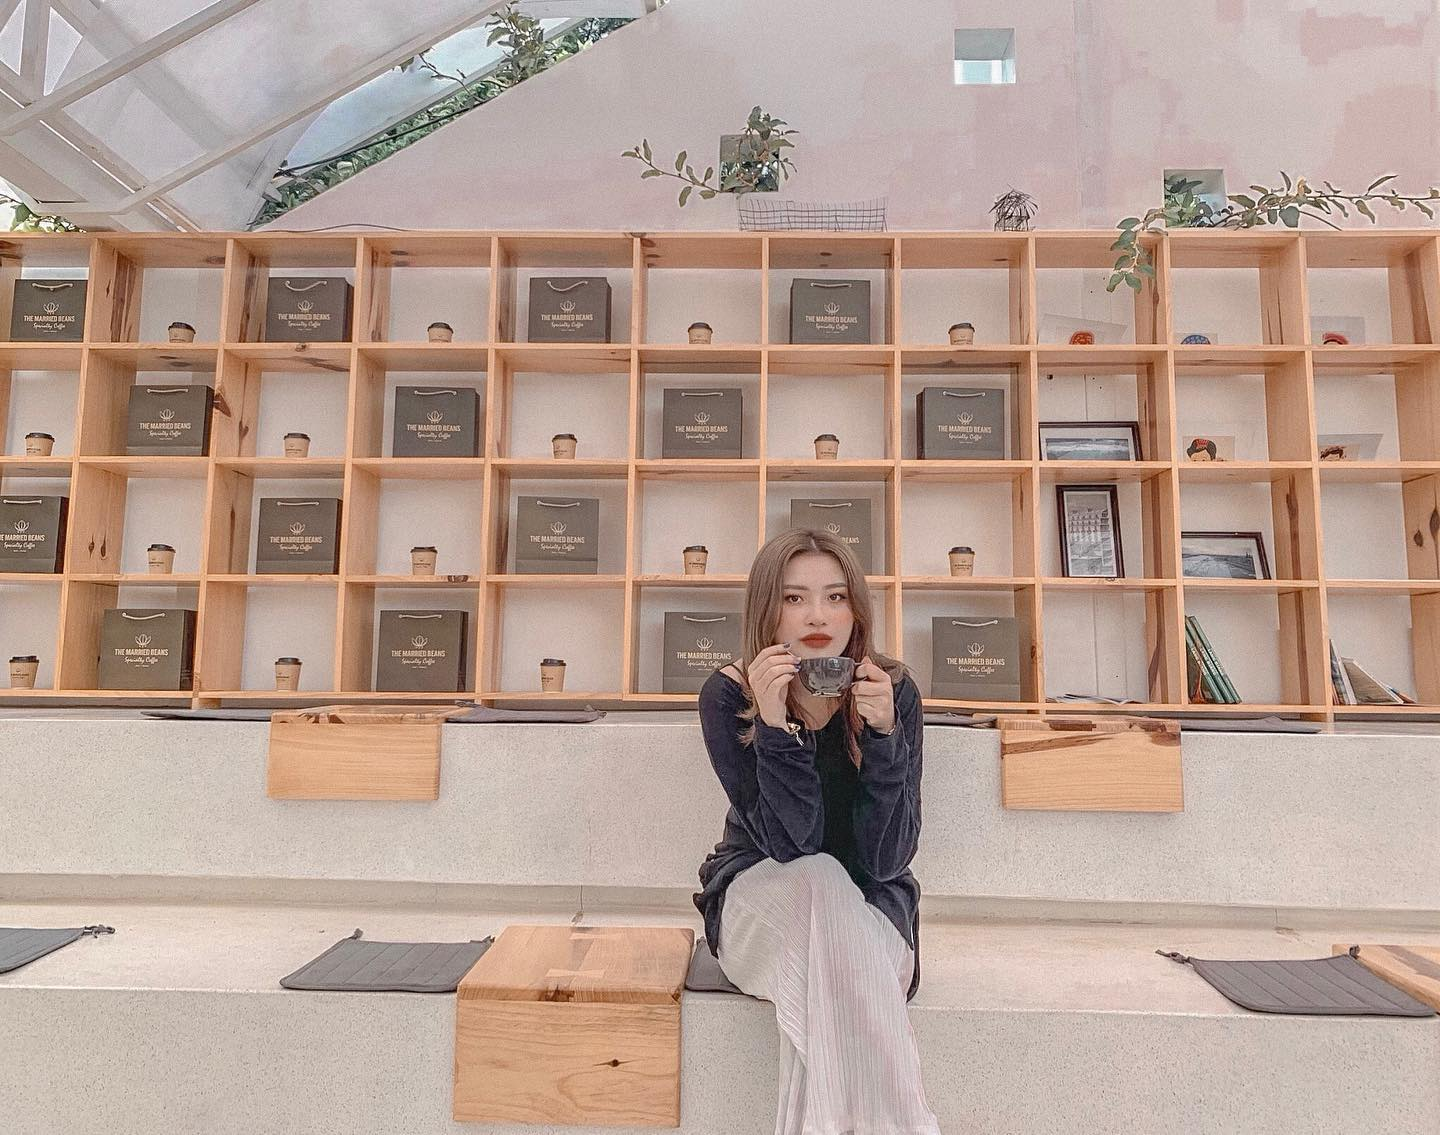 da-lat-the-married-beans-workspace-3